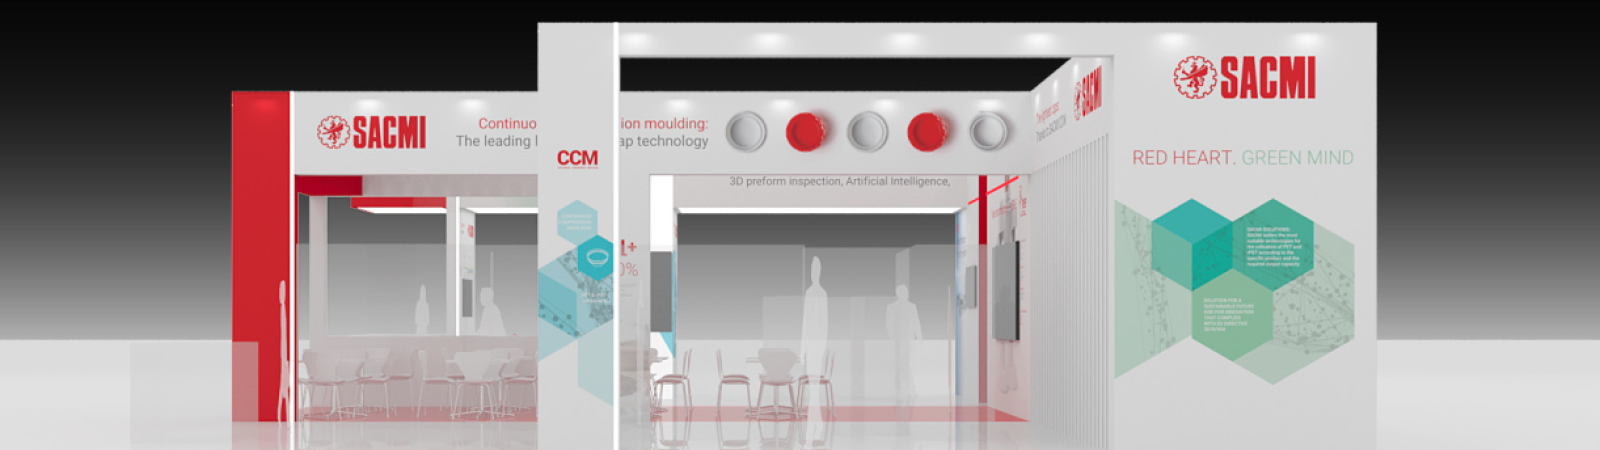 Compression Technology by SACMI in mostra a Plastivision 2020